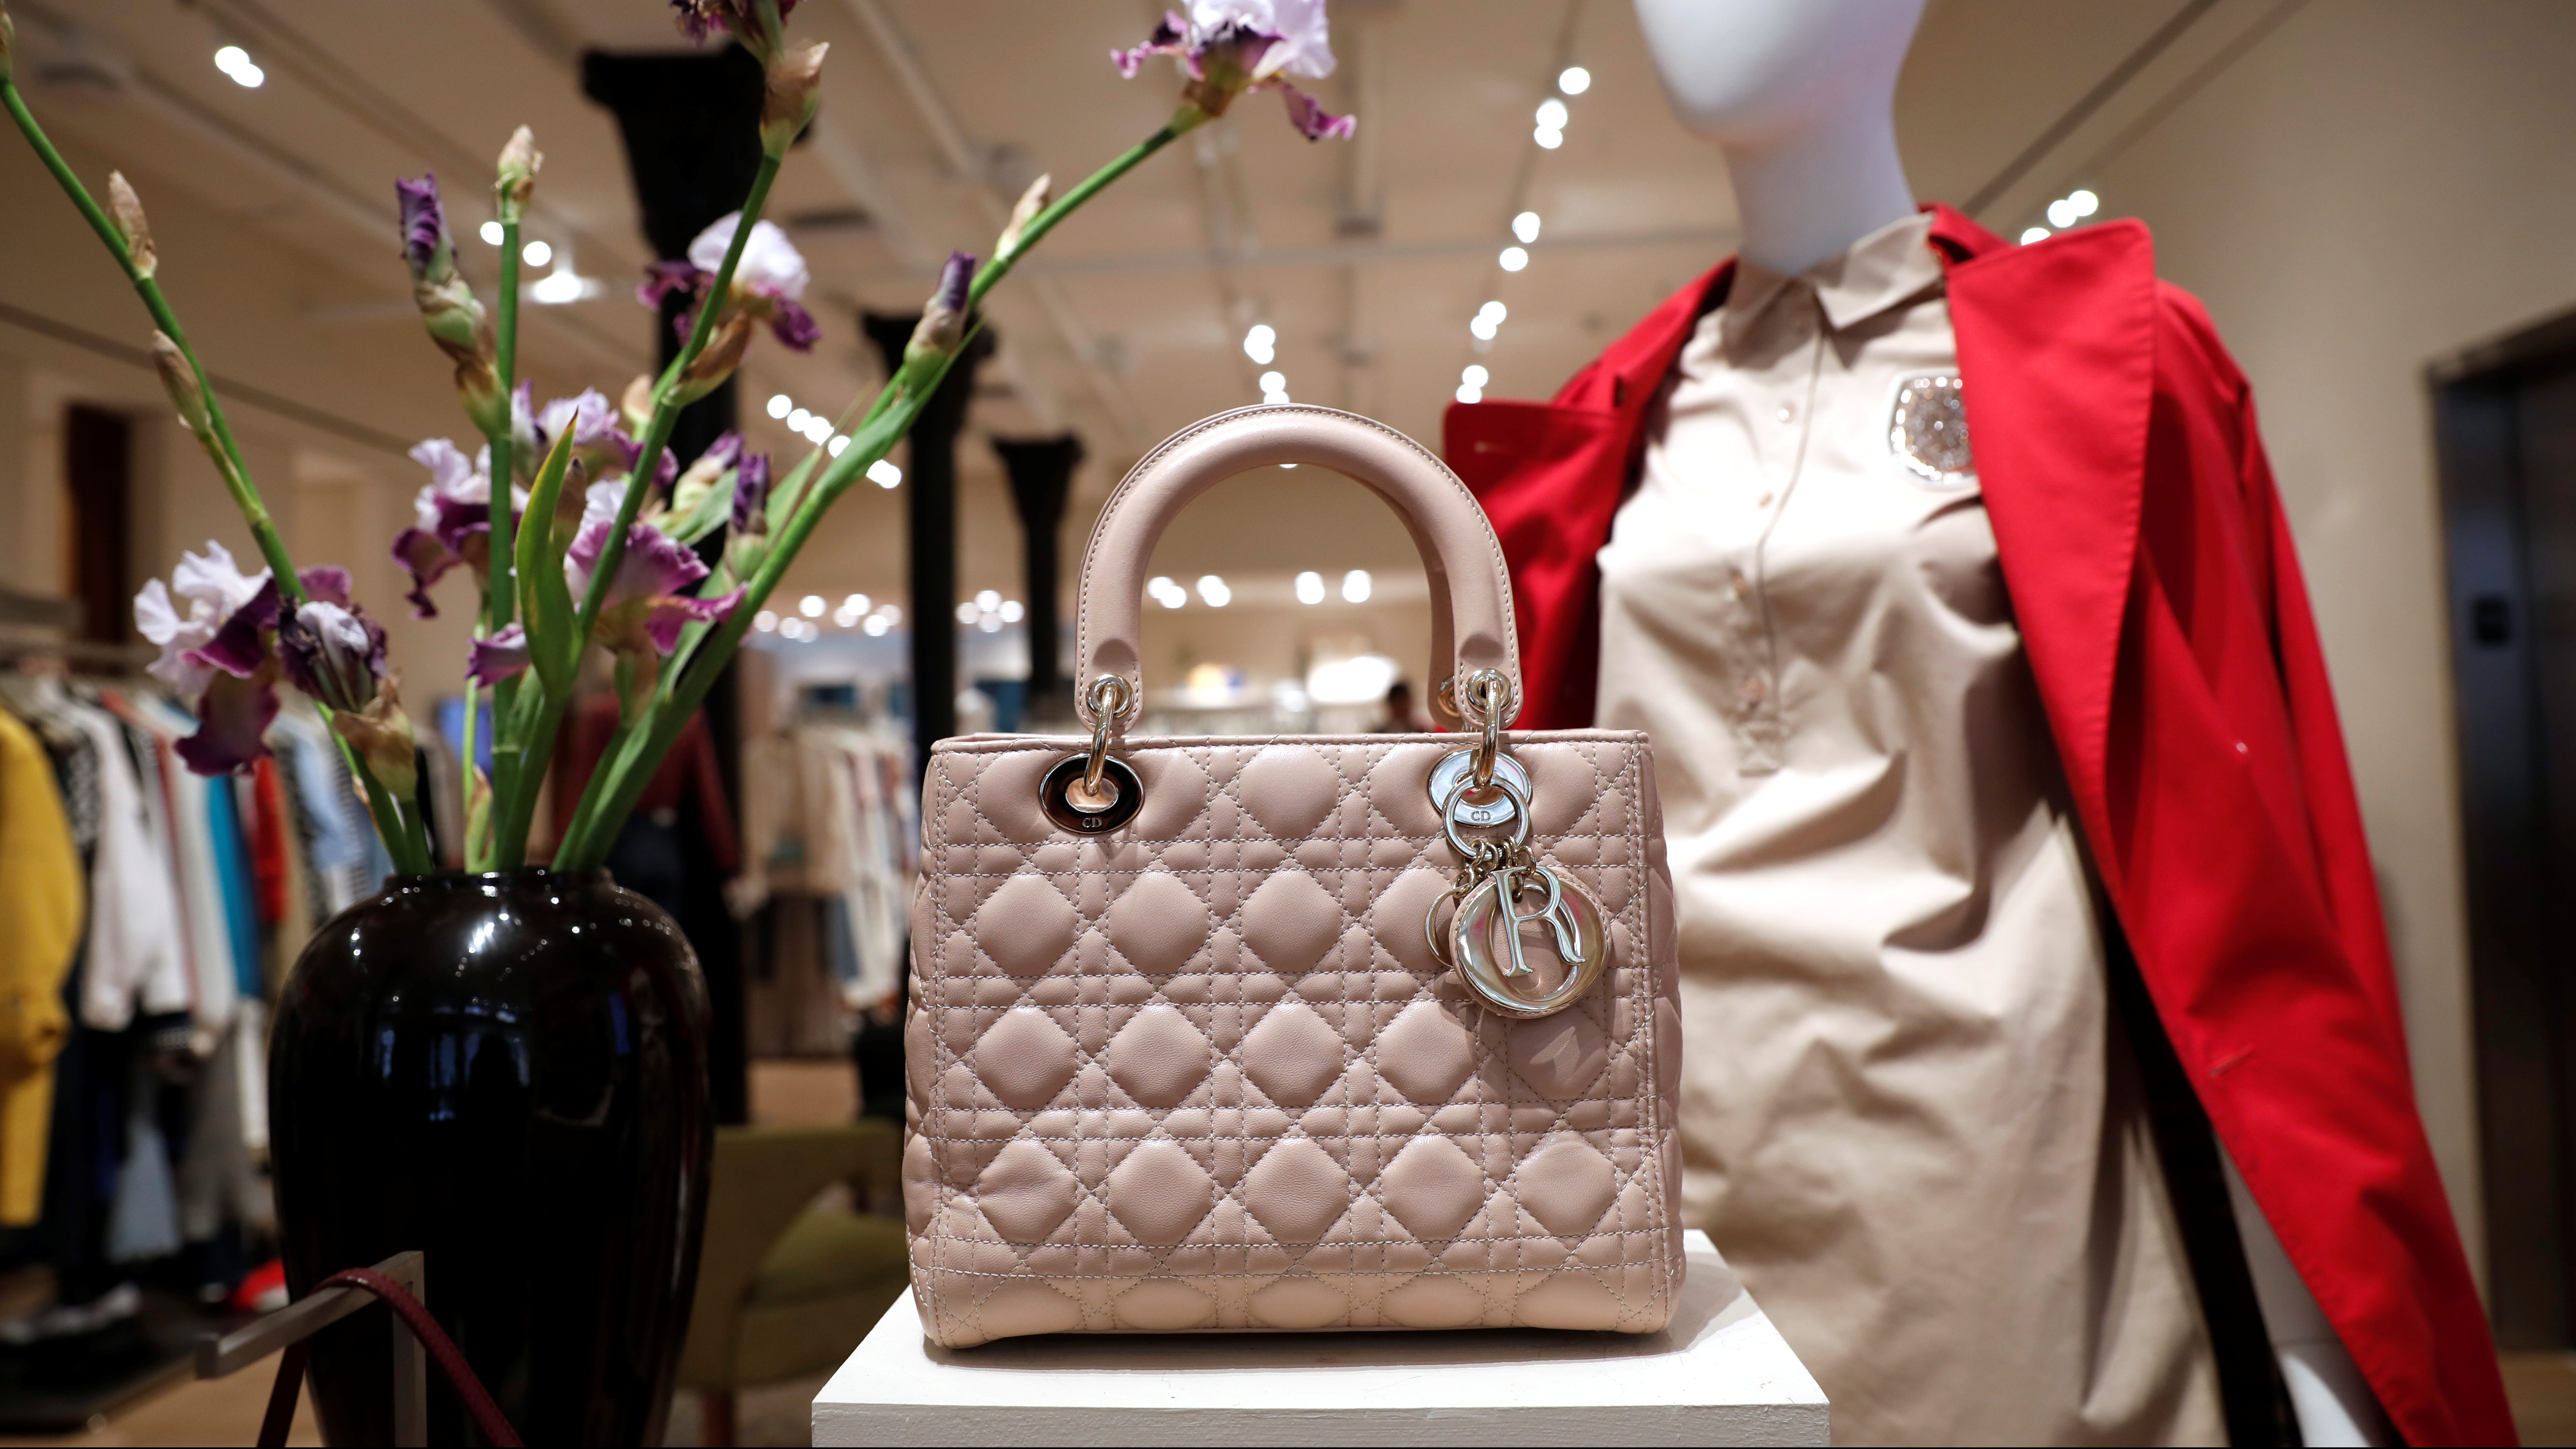 Luxury items for sale are displayed at The RealReal shop